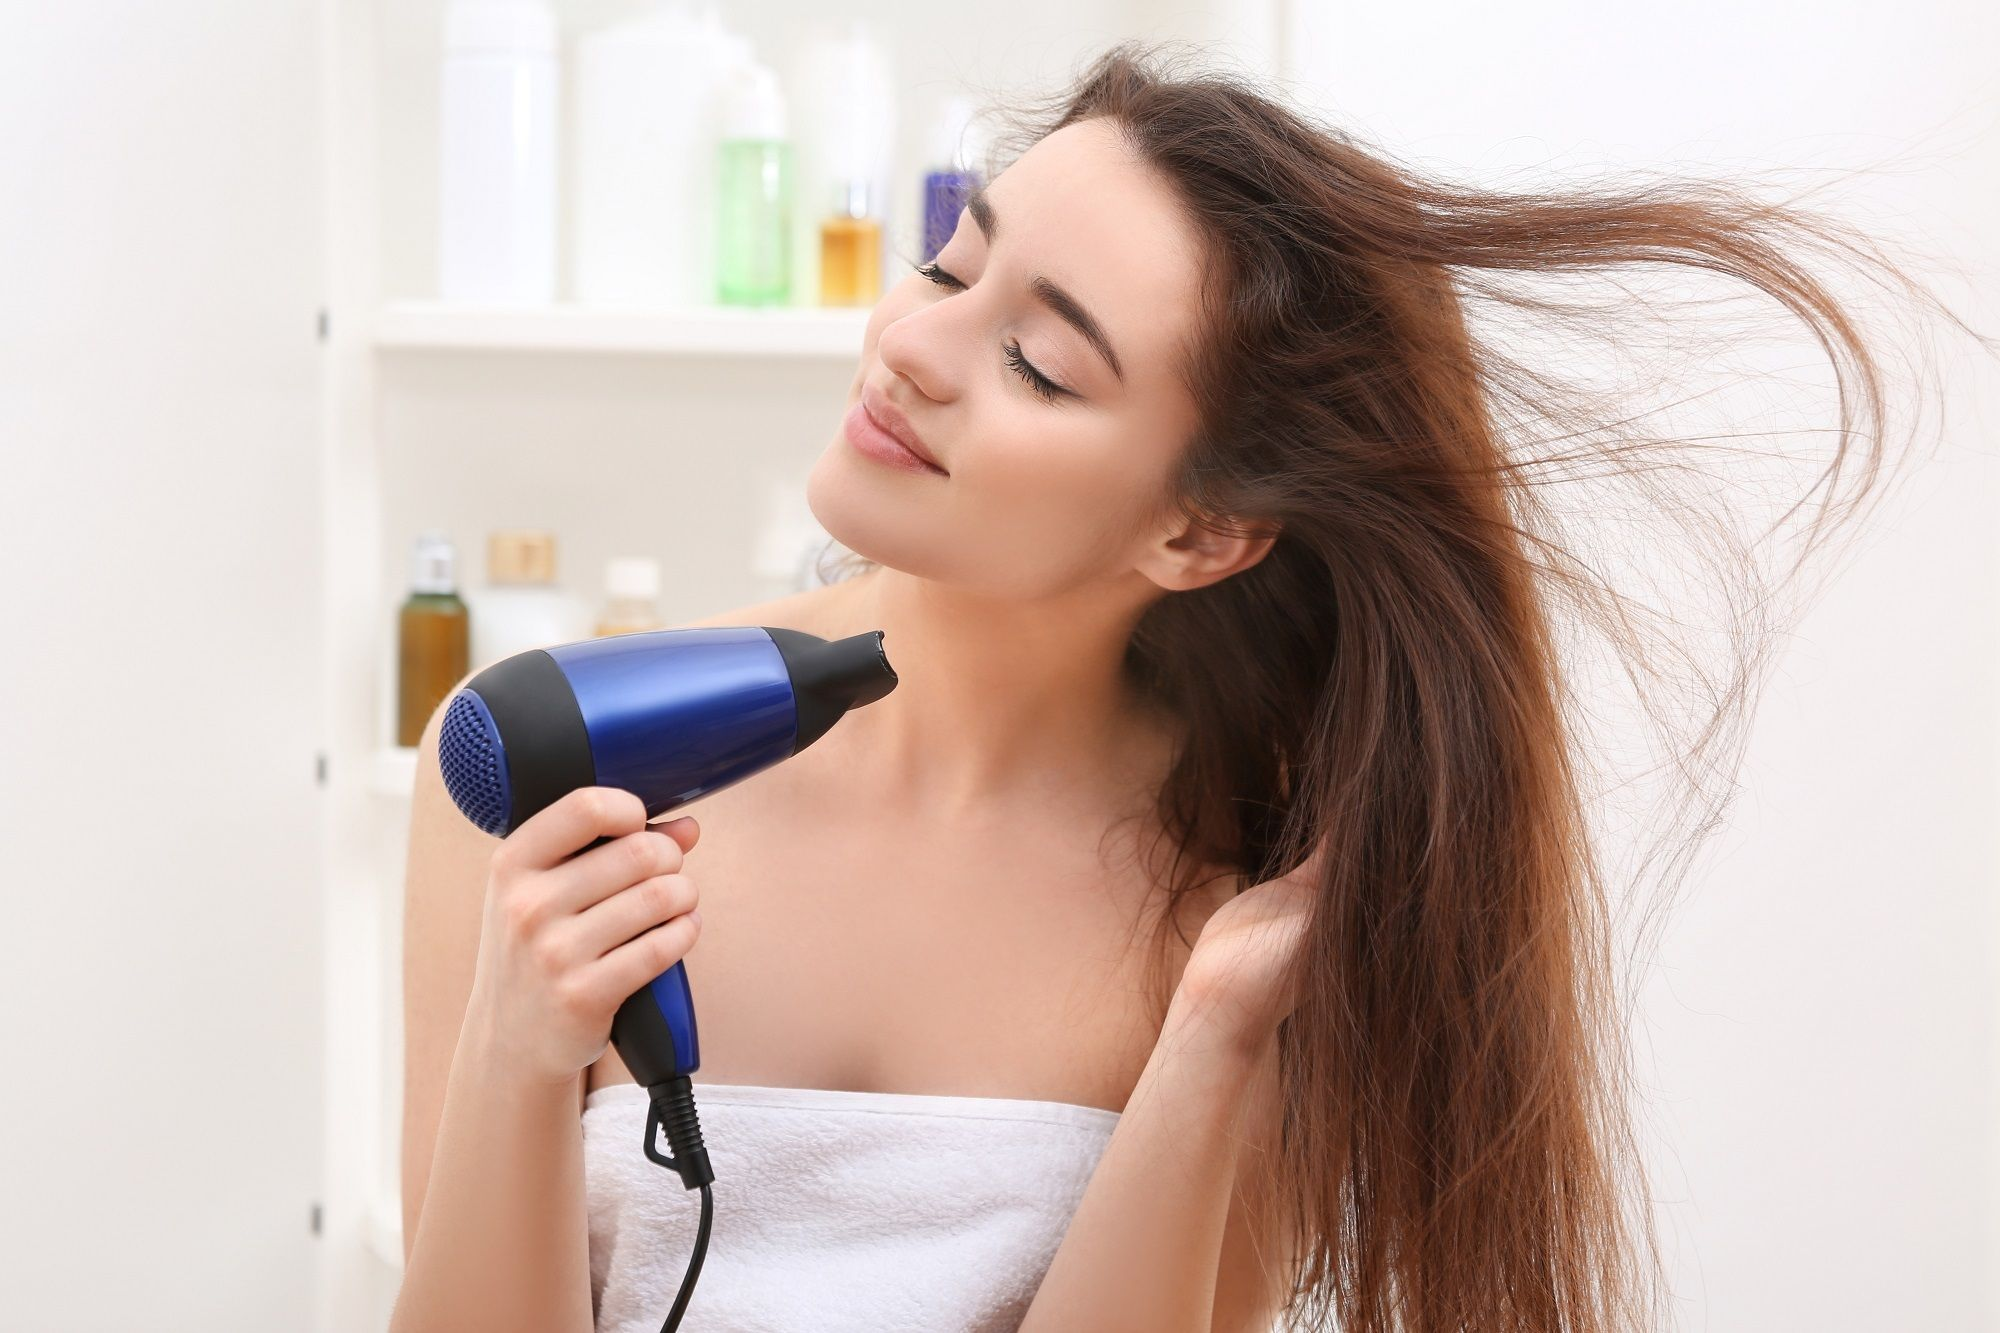 Hair care tips for thin hair: Minimize styling